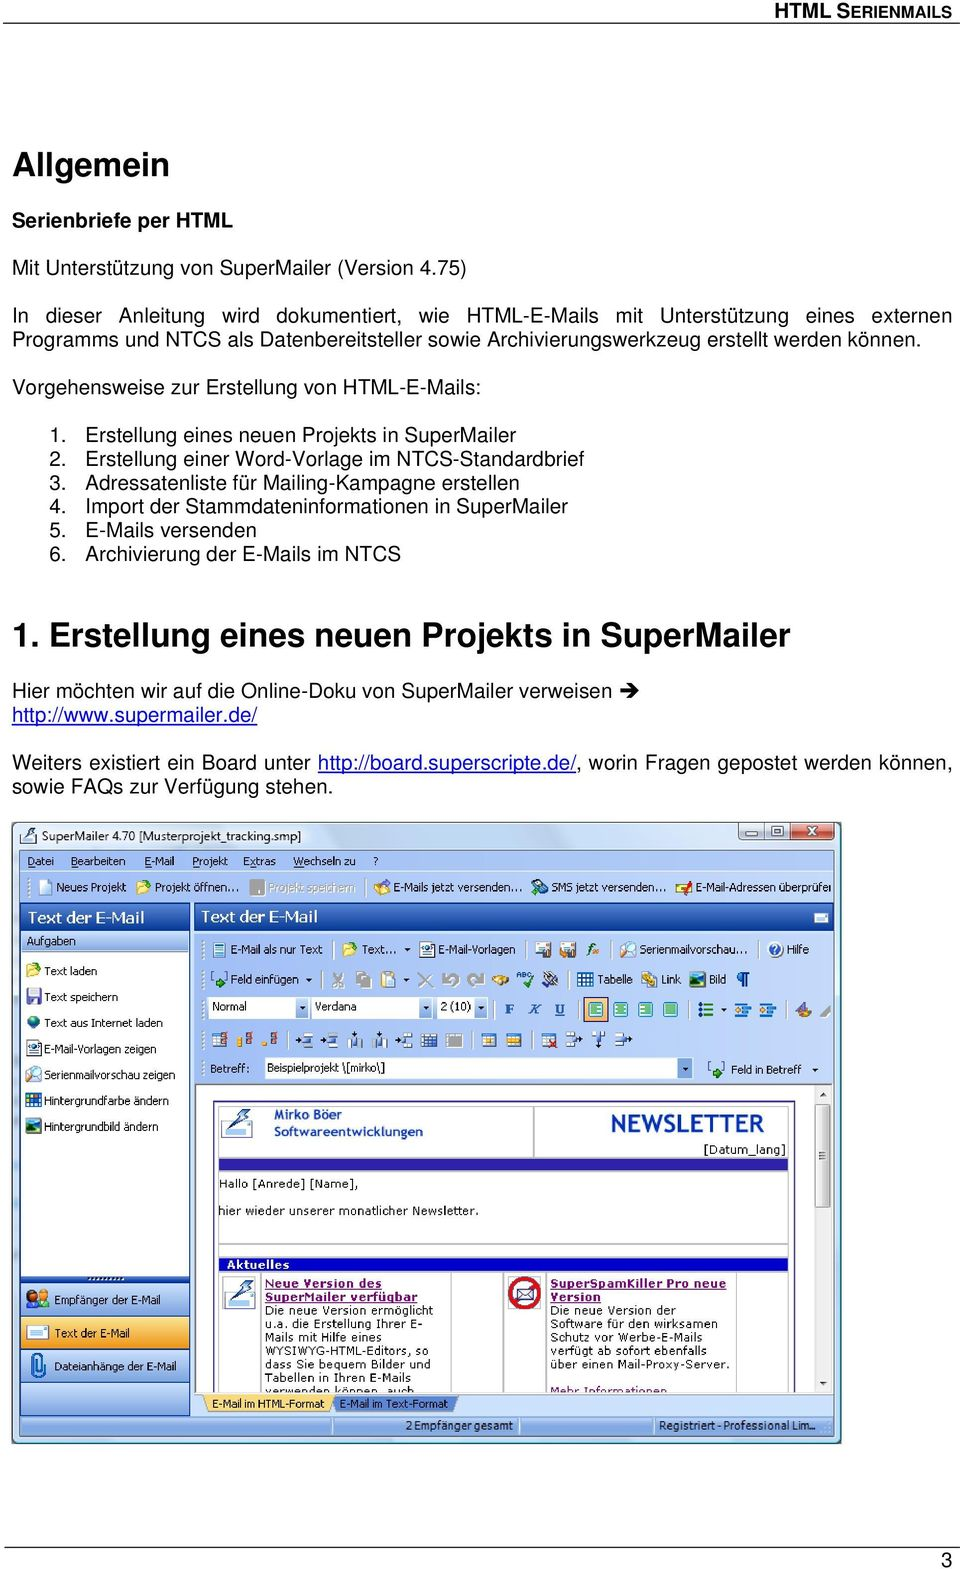 Html Serienmails Mit Standardbrief Und Supermailer Pdf